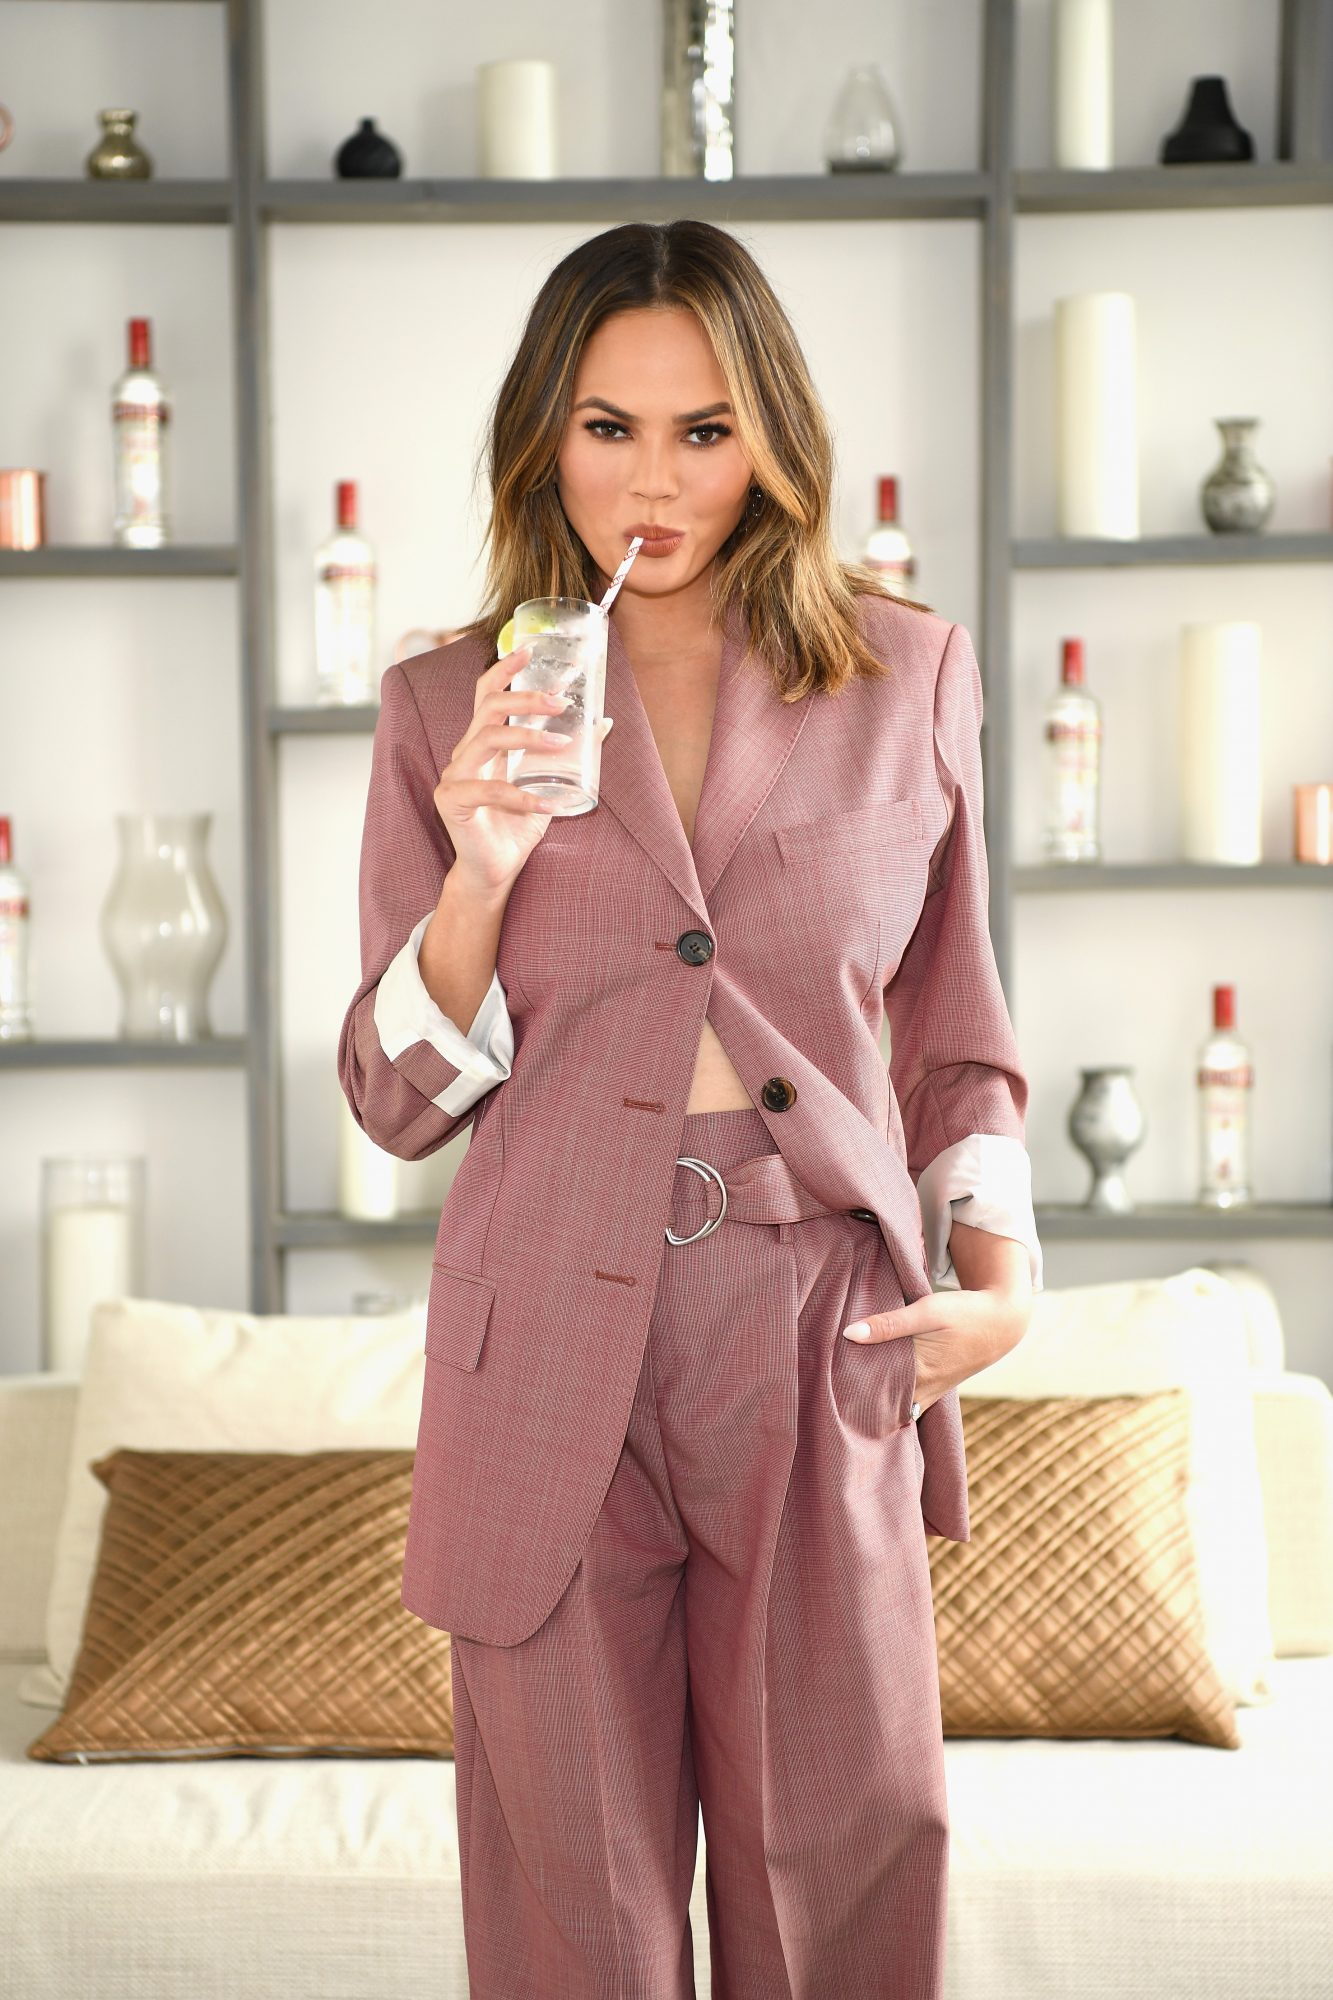 chrissy-teigen-cocktail